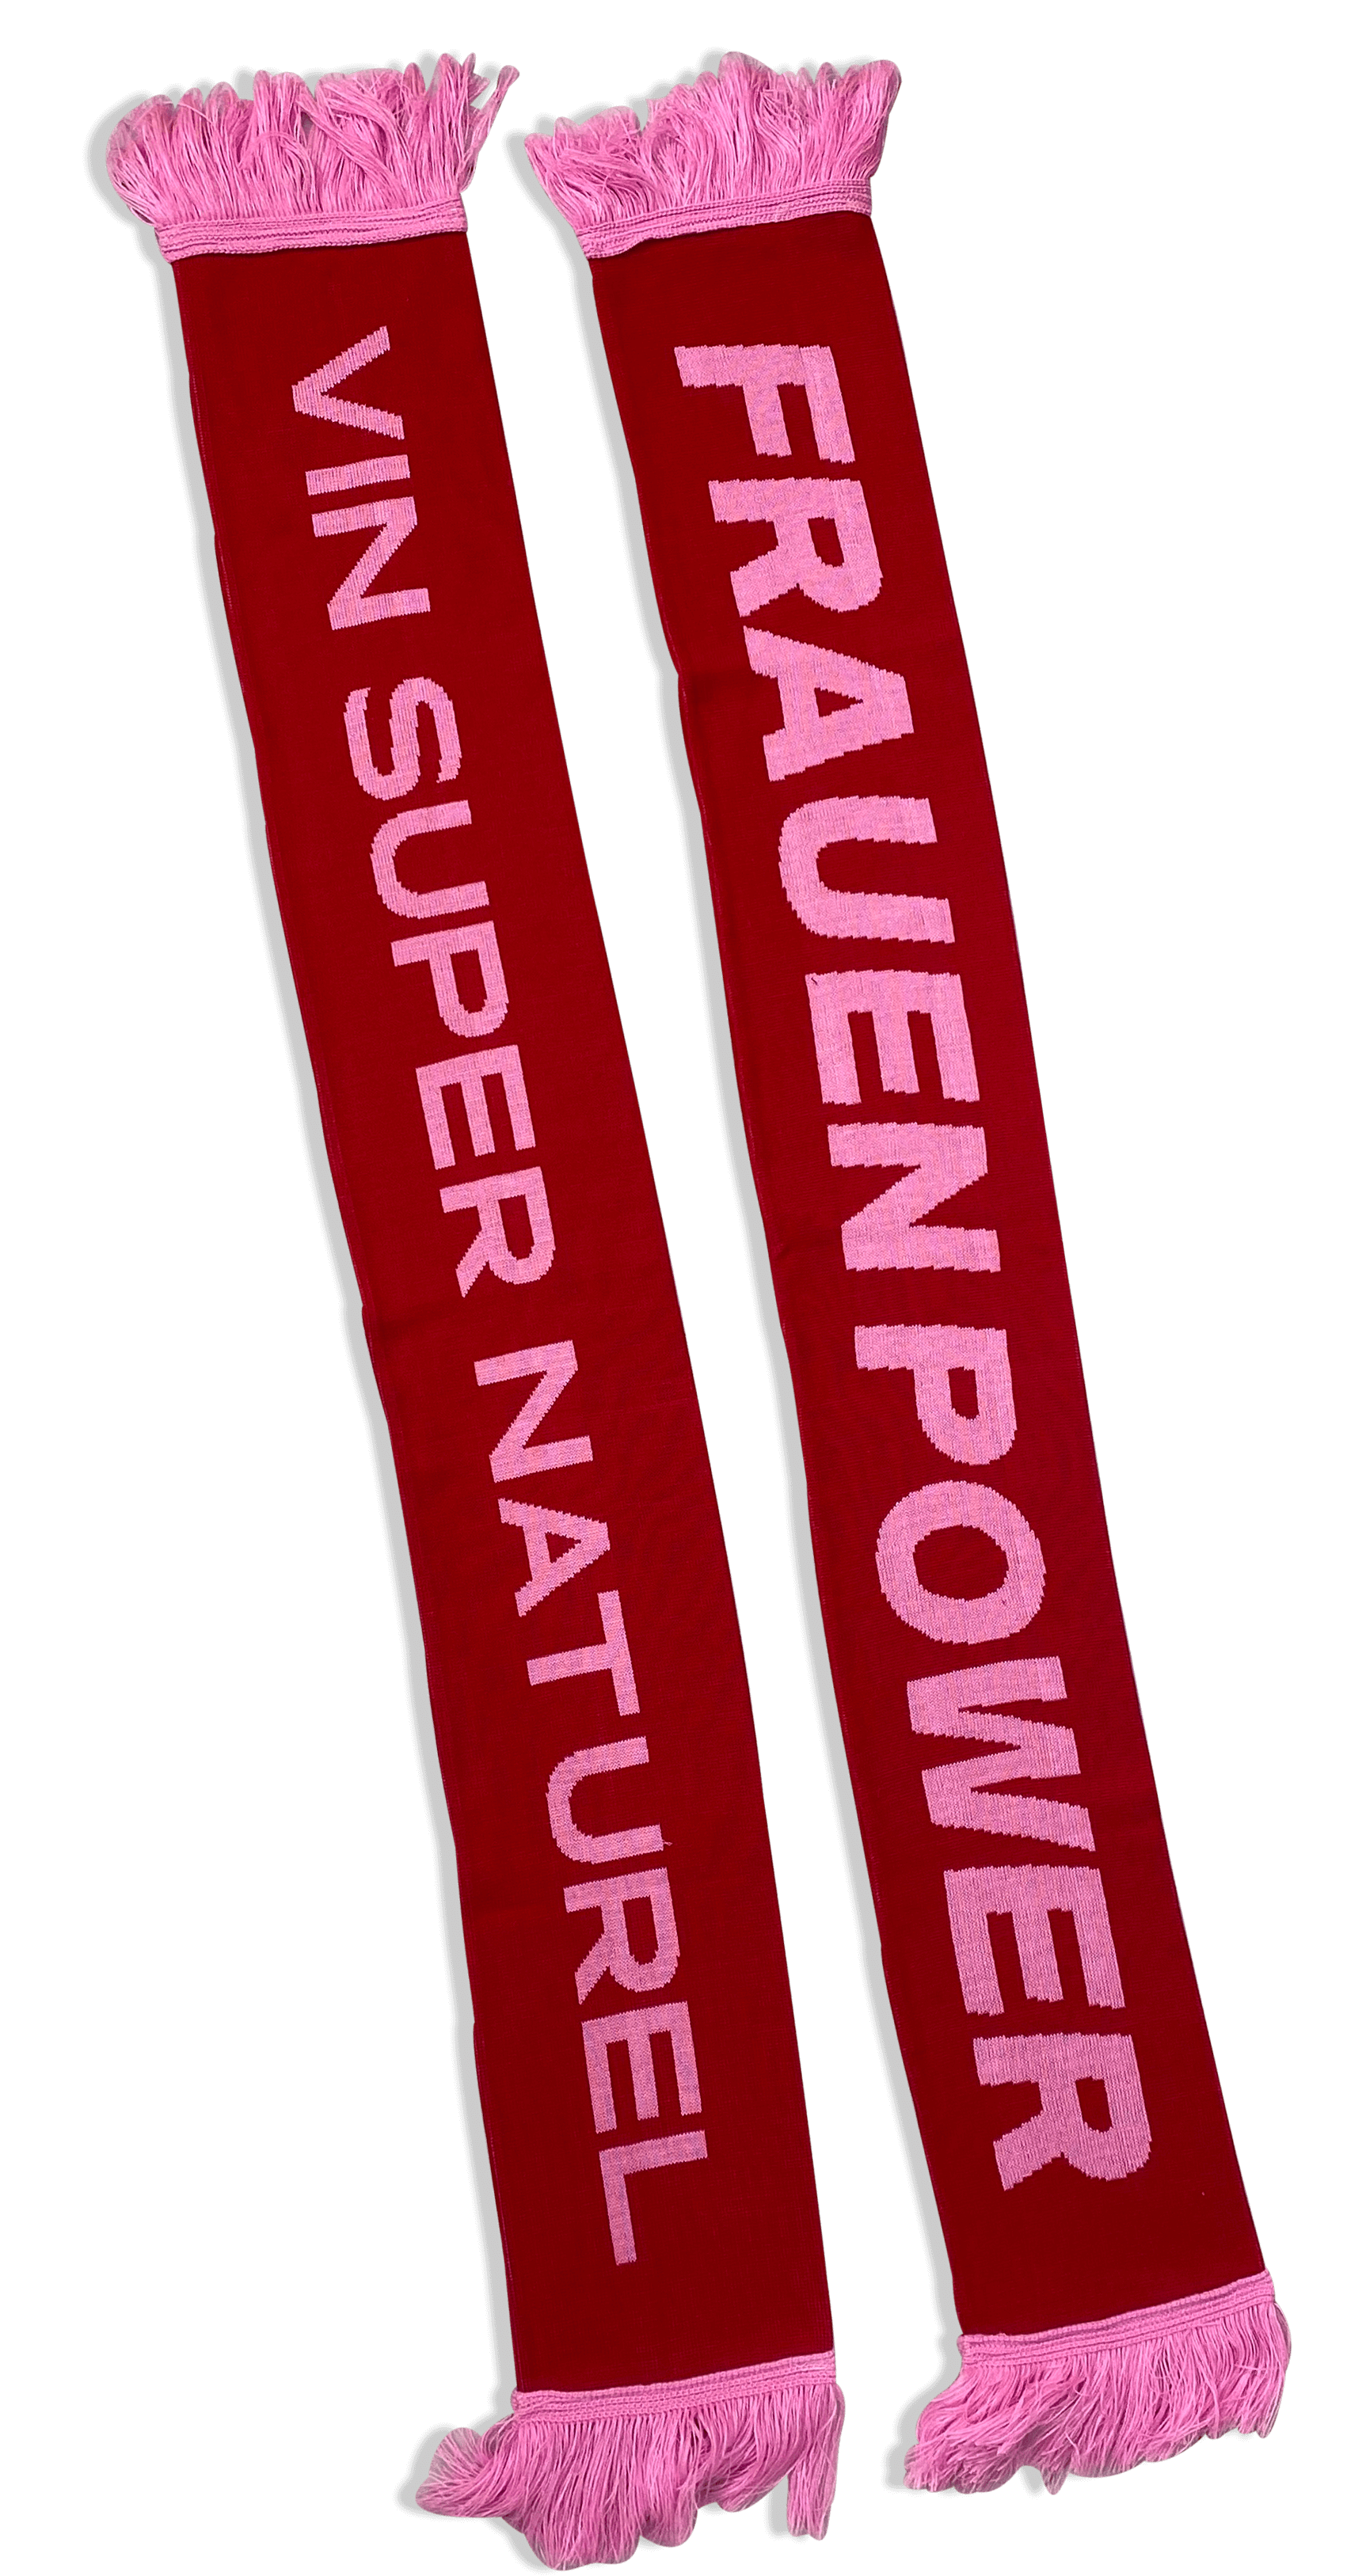 Frauen Power Supporter Scarf - Vinsupernaturel